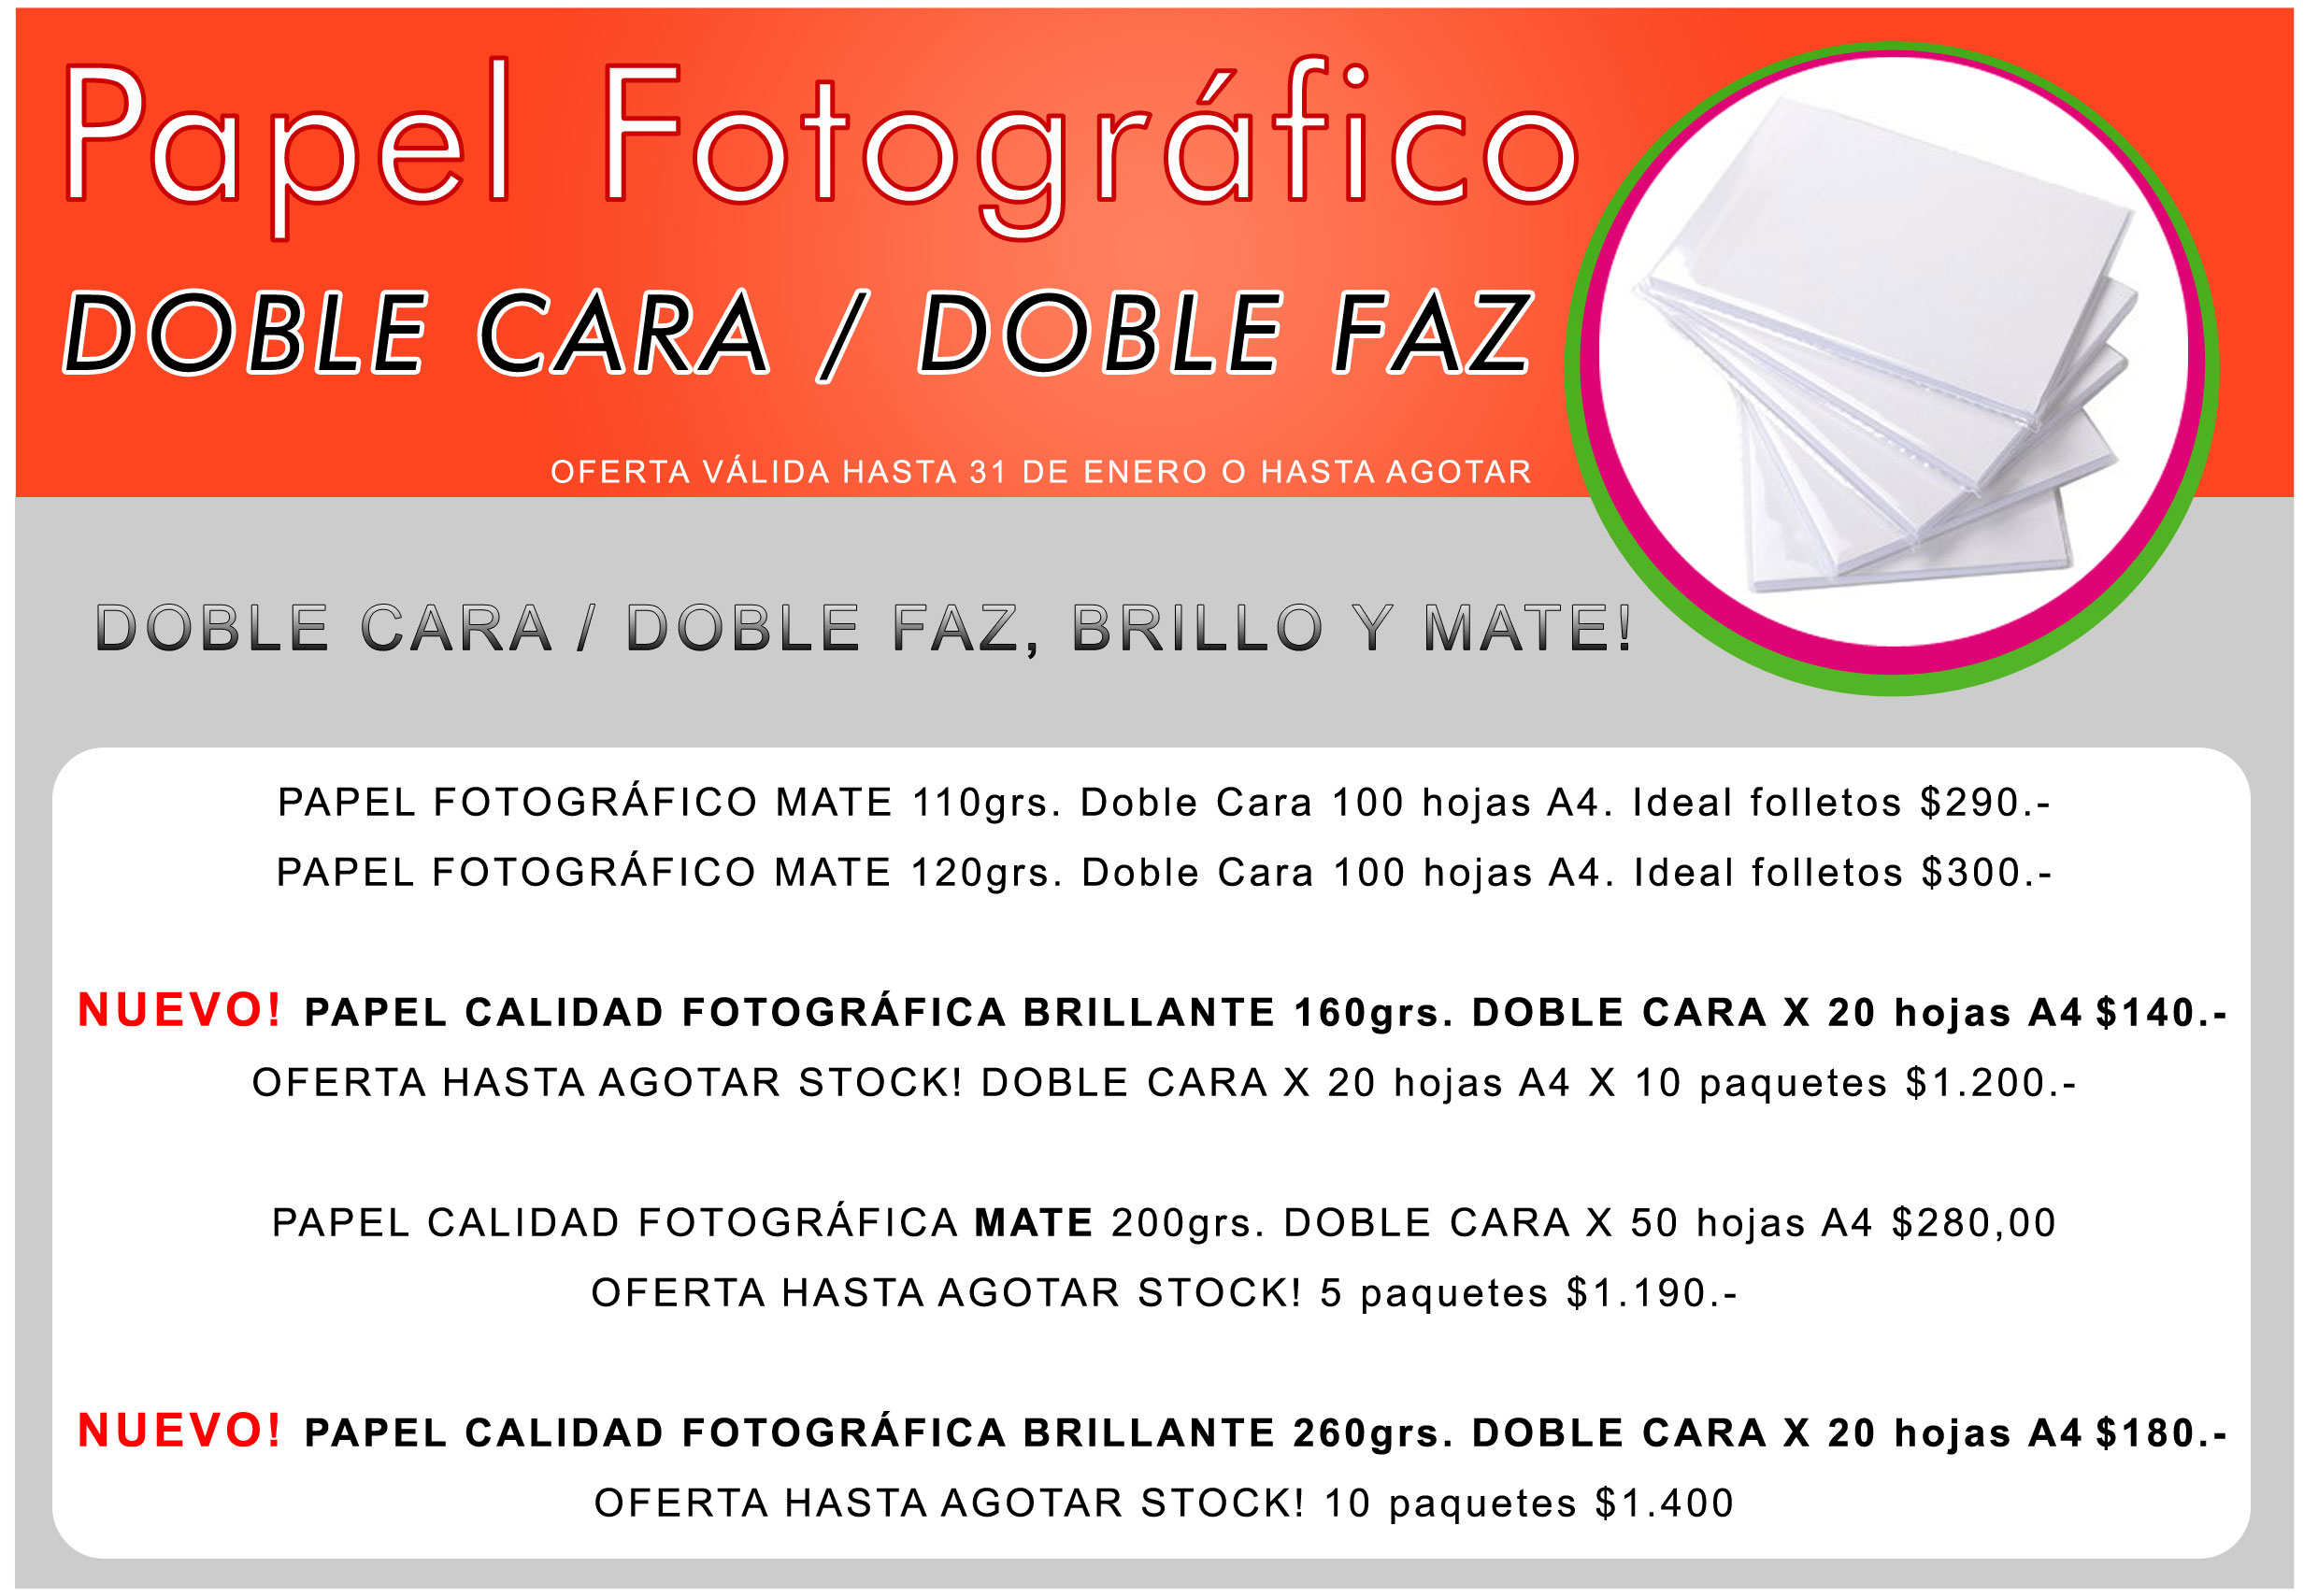 Papel fotográfico doble cara brillante